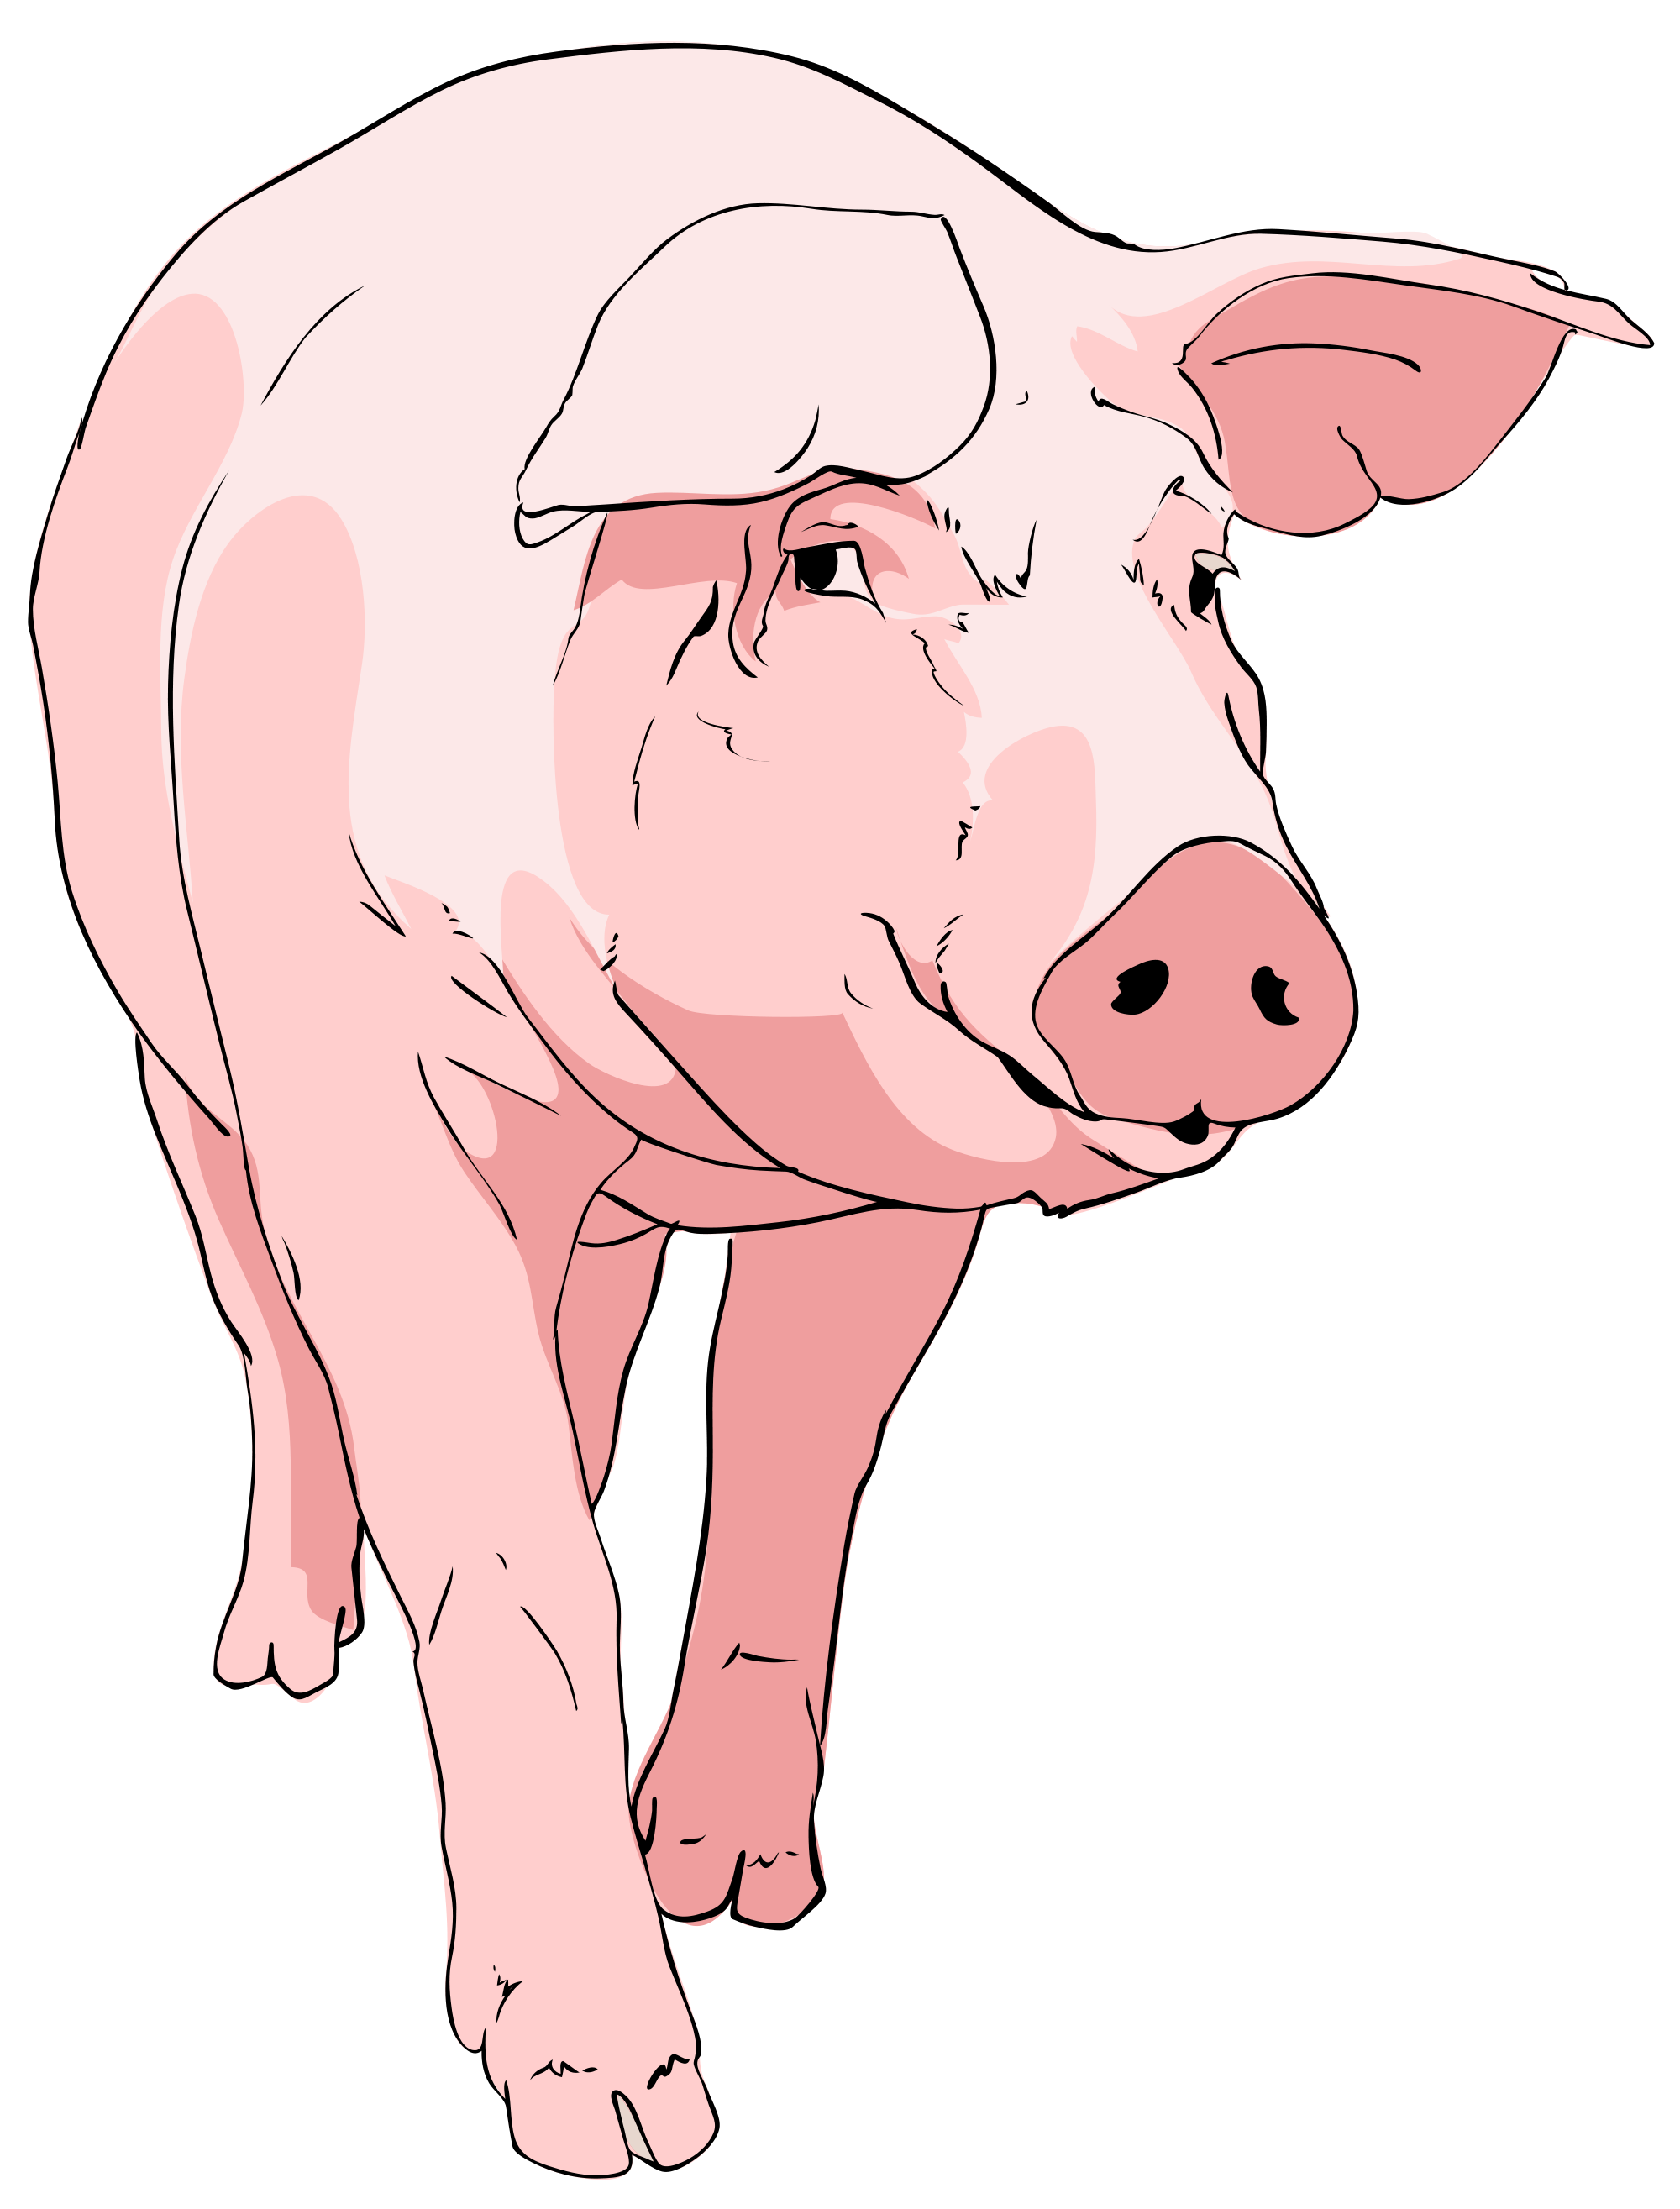 Pig clipart female pig. Swine of a cute